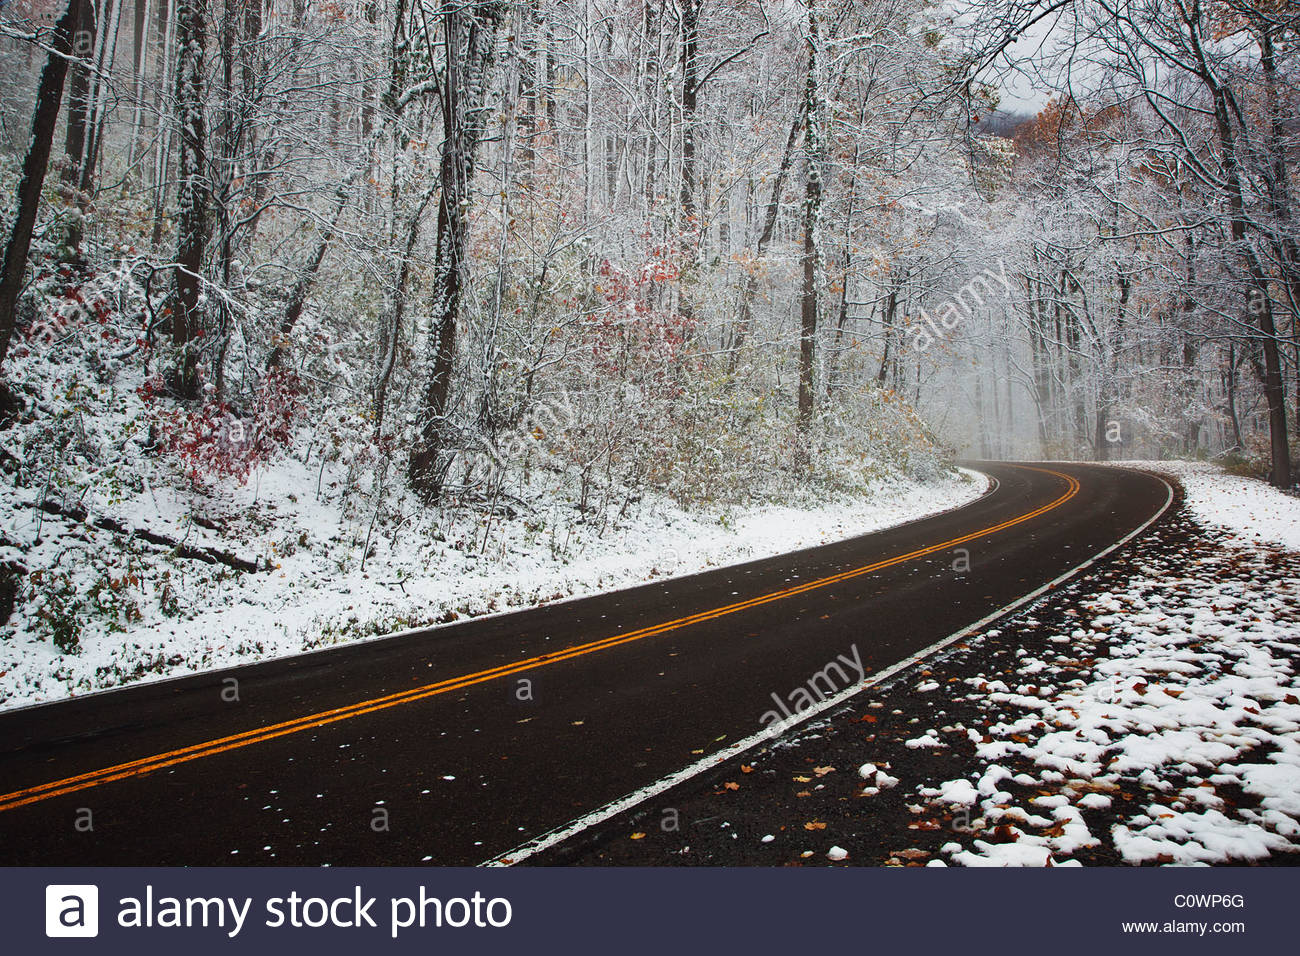 Early Snow fall along Newfound Gap Road in the Great Smoky Mountains National Park - Stock Image